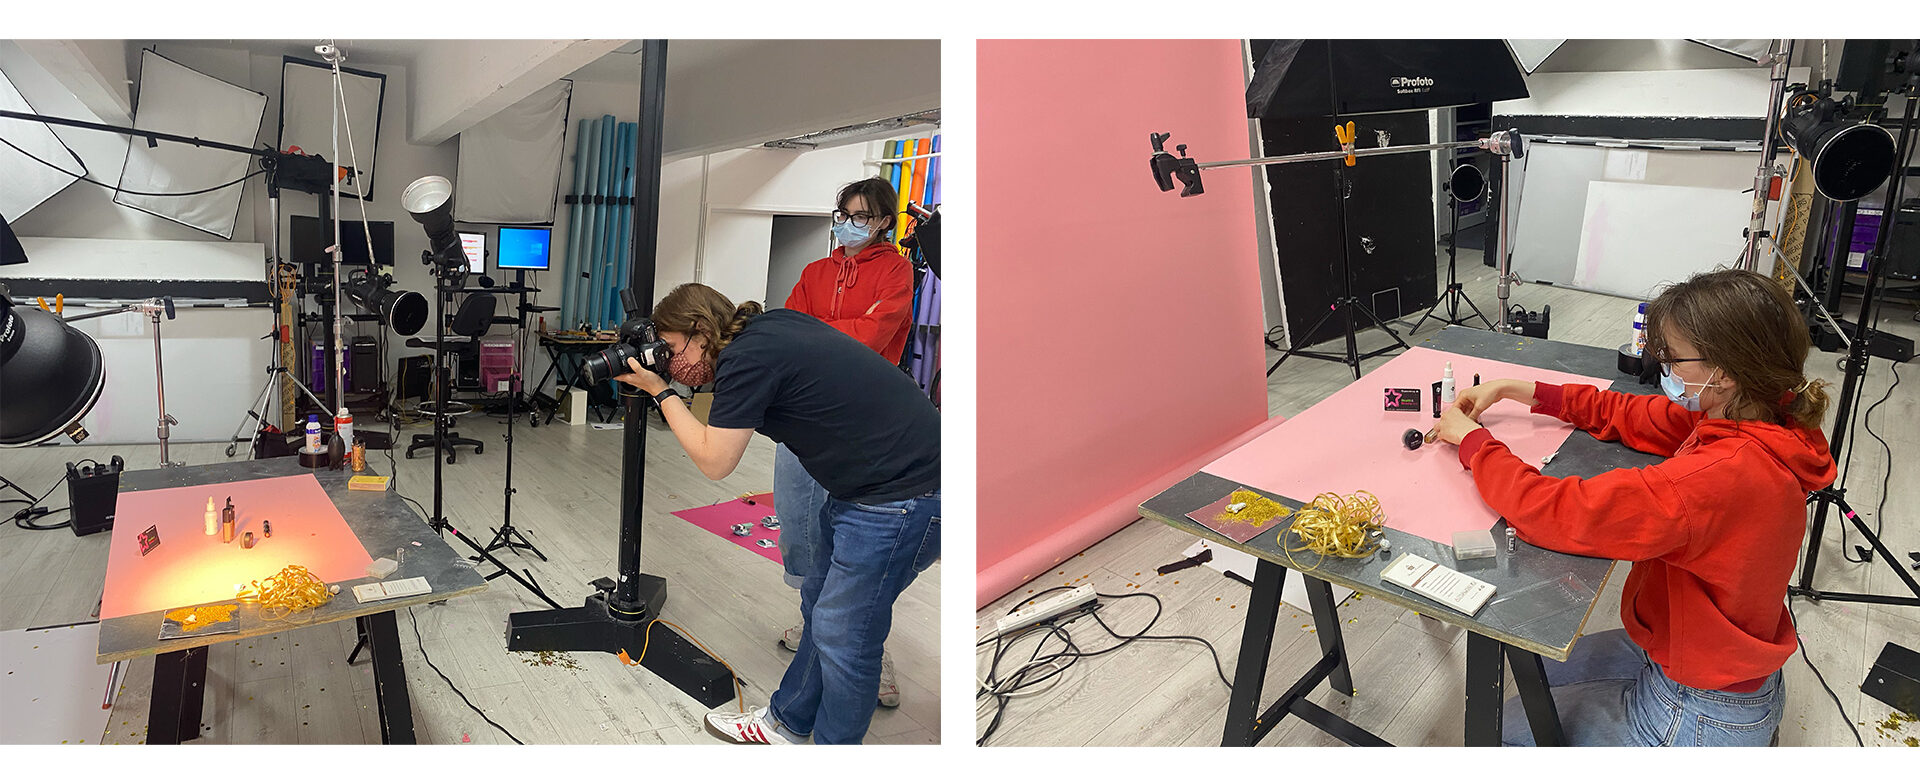 superdrug health beauty cosmetics behind the scenes